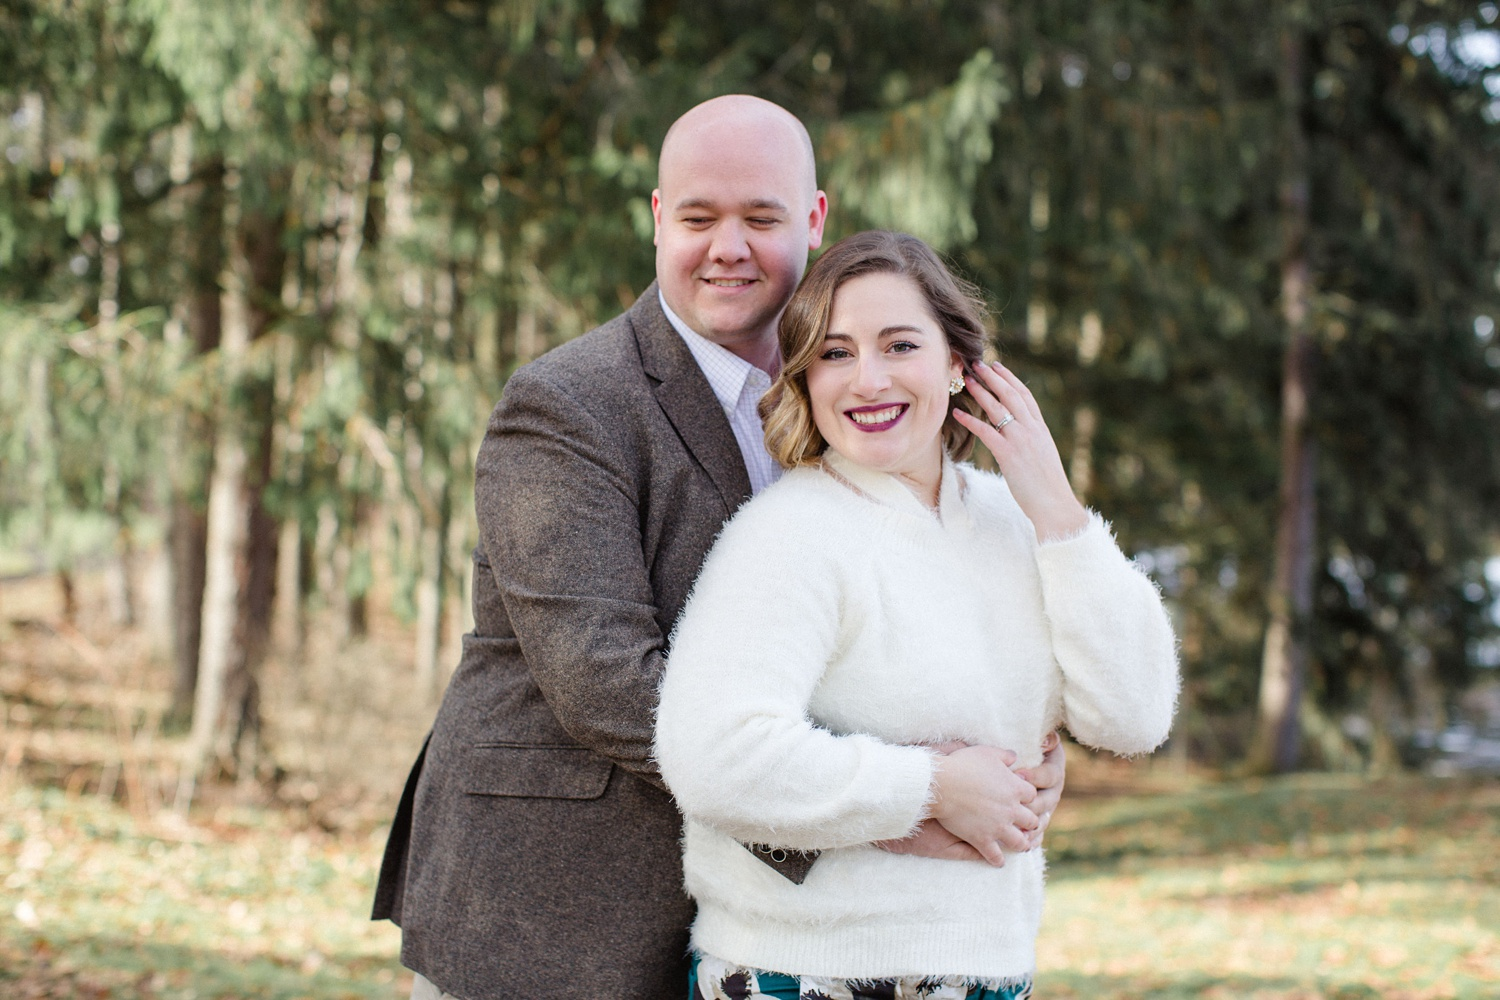 Clarks Summit PA Engagement Session Anniversary Photos_0015.jpg